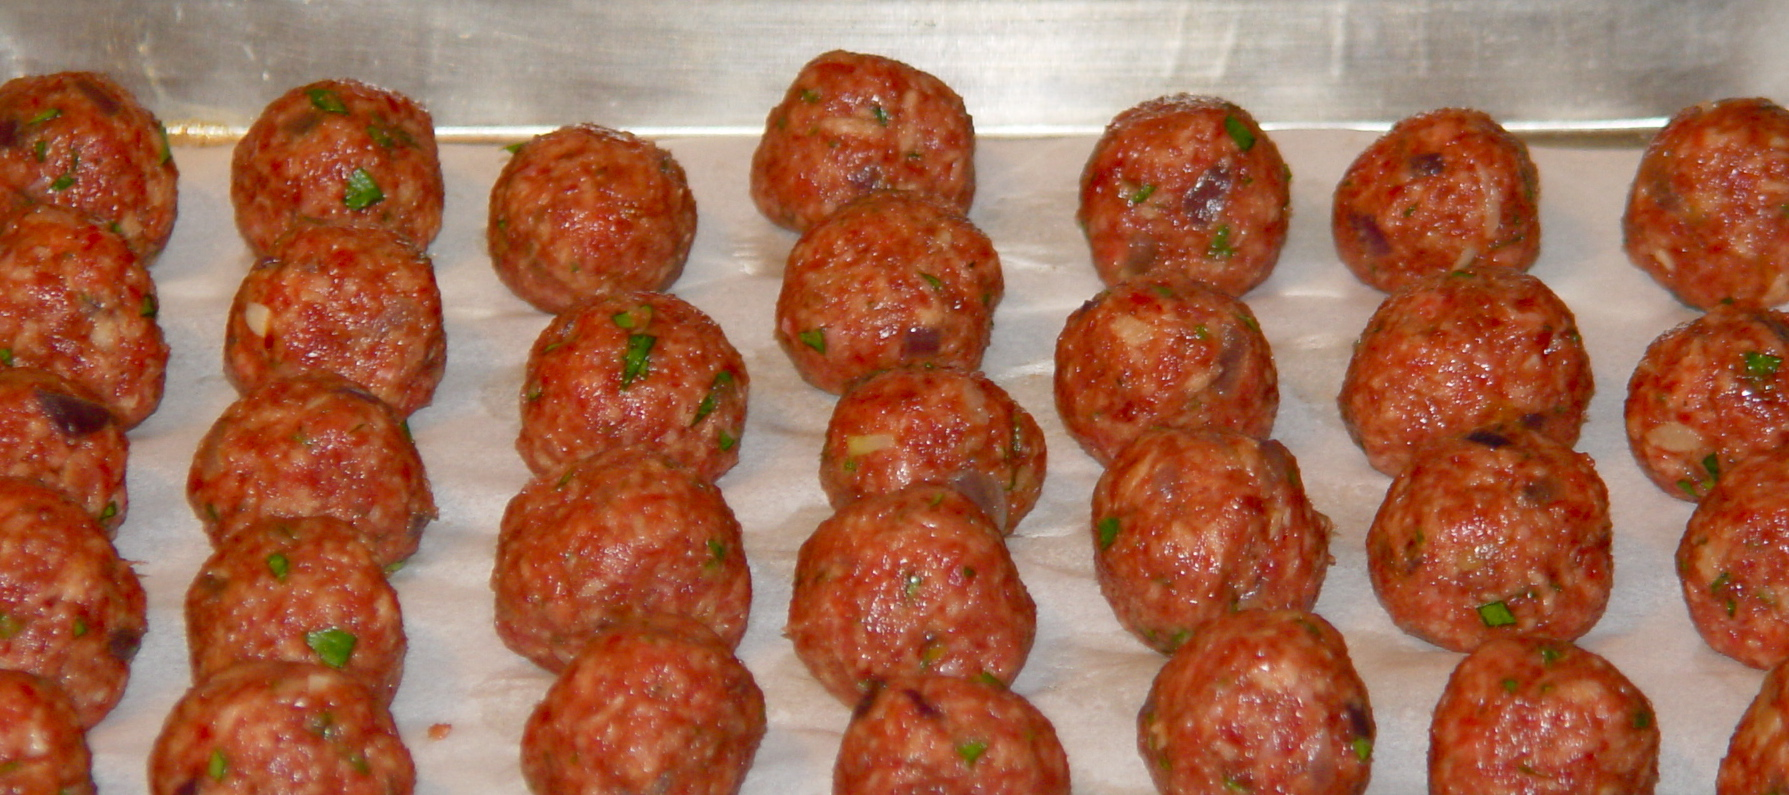 Chipotle Meatballs - uncooked